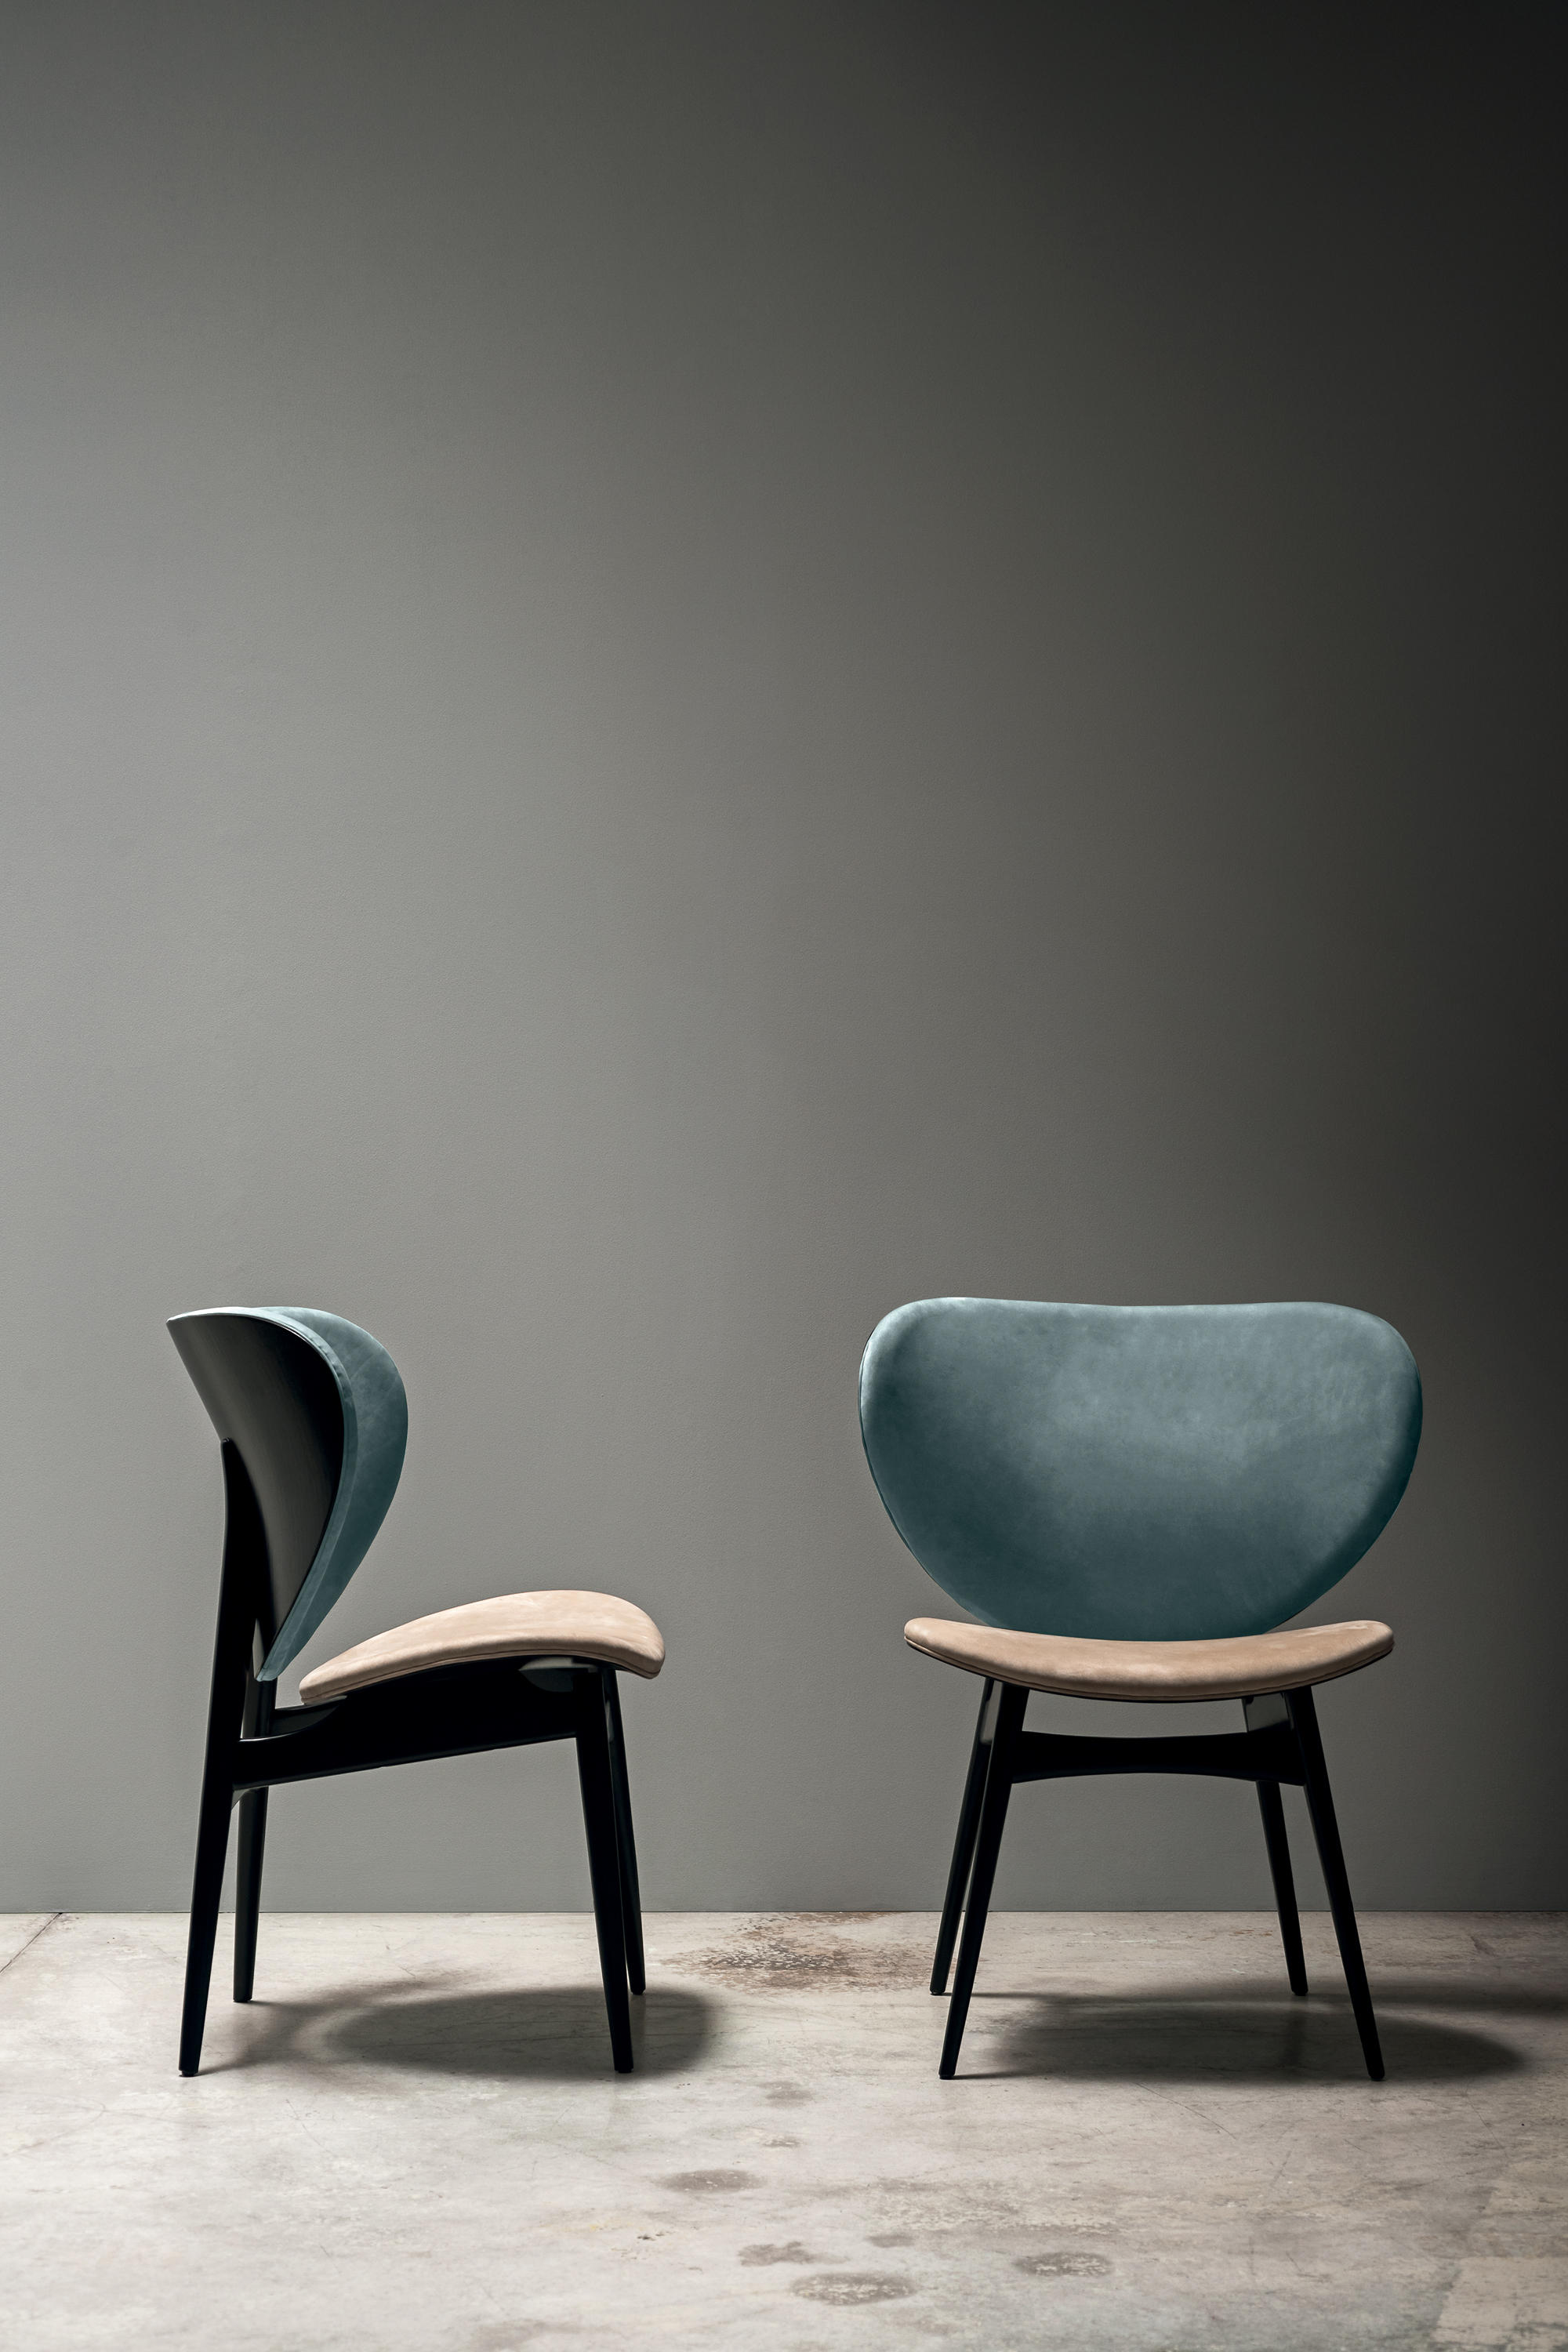 design within reach chair walnut hanging ezibuy alma - chairs from baxter | architonic